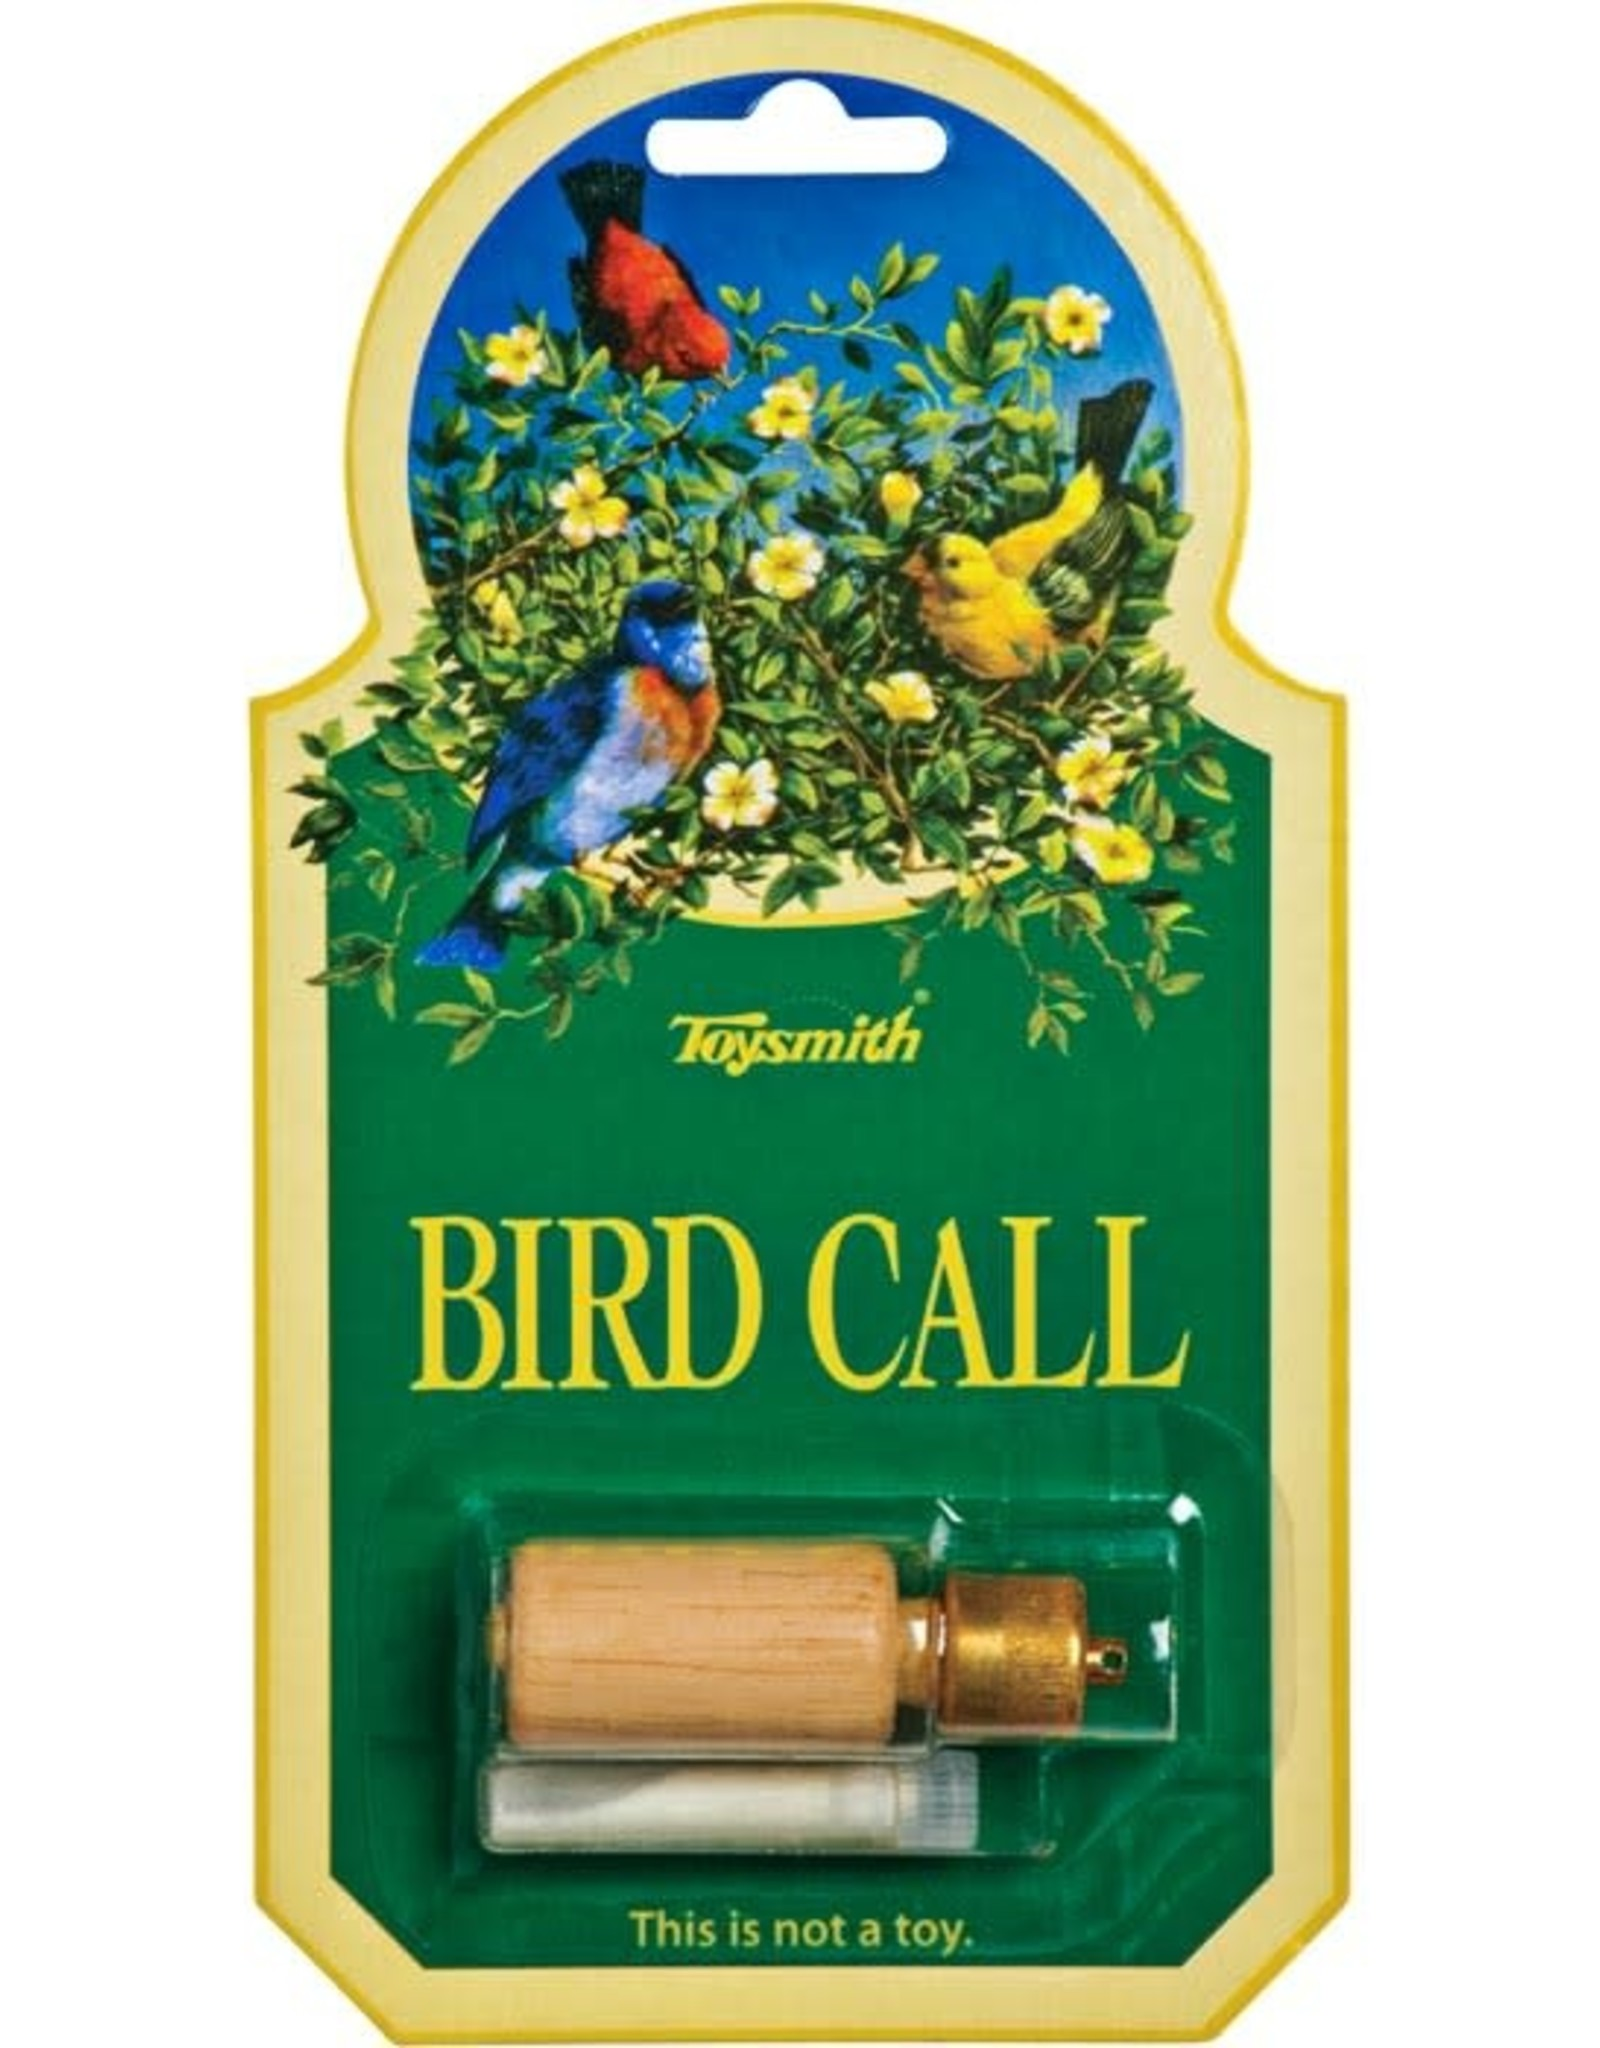 Toysmith Bird Call